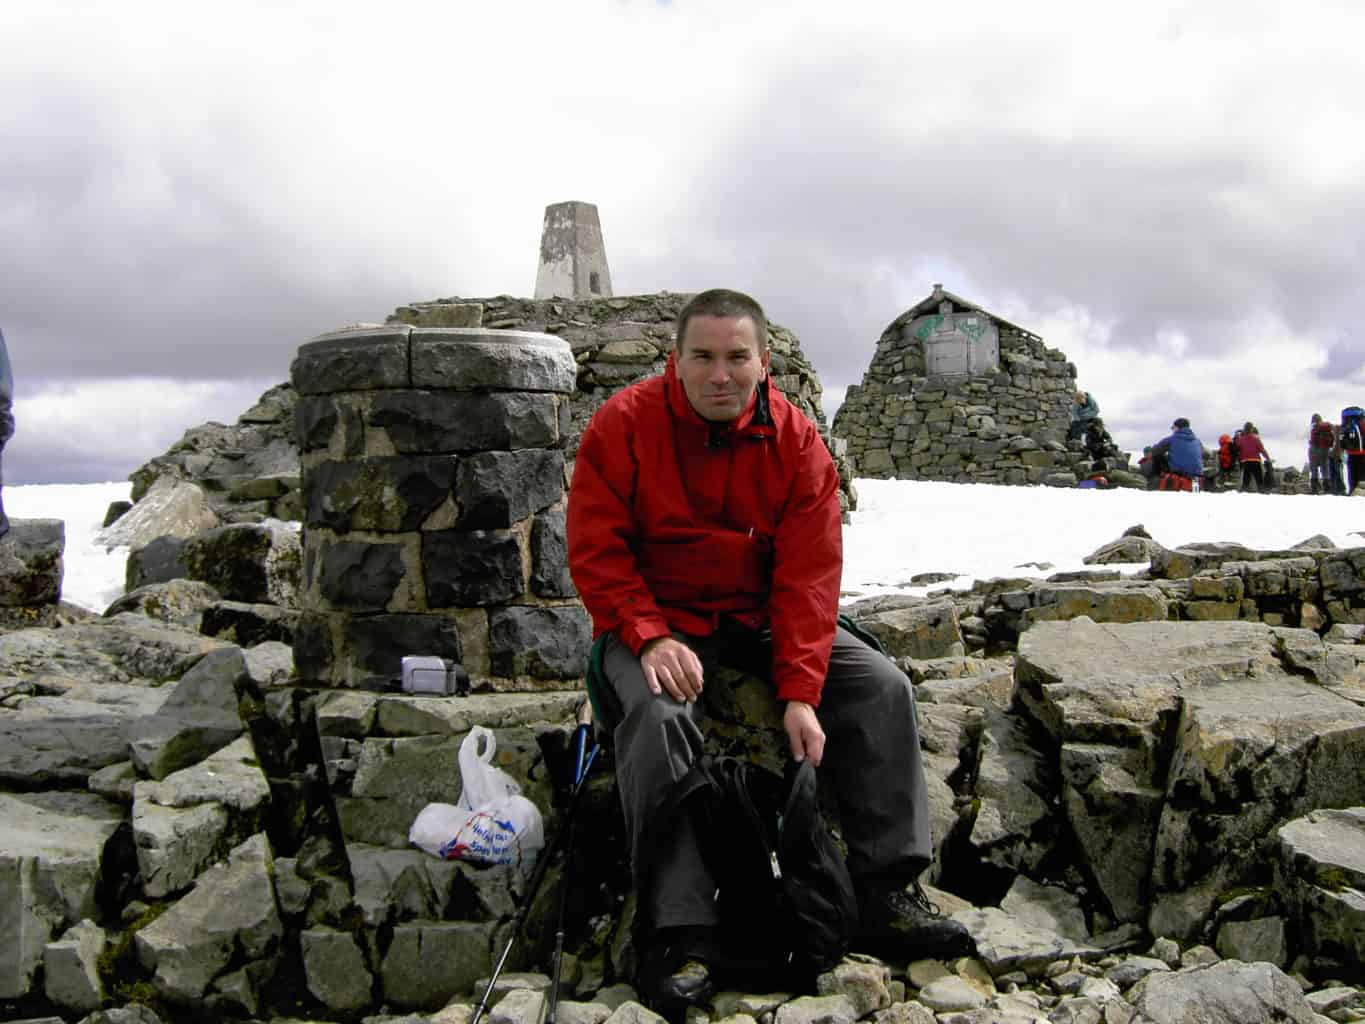 Leslie at the Top of Ben Nevis